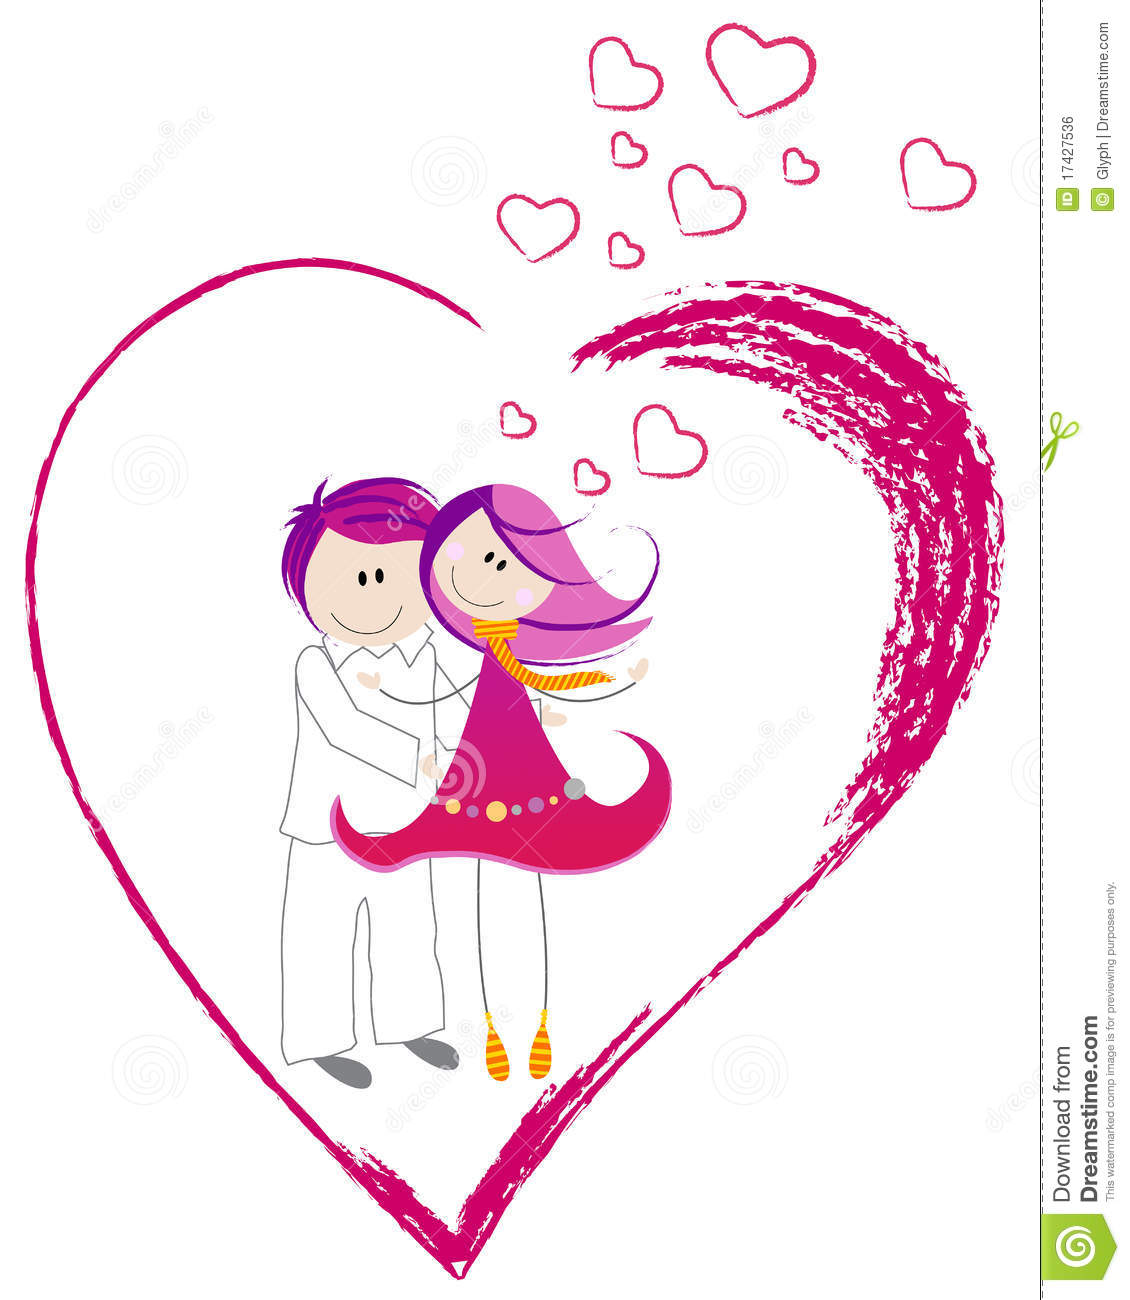 Cute valentines day heart with boy and girl stock vector cute valentine s day heart with boy and girl voltagebd Image collections